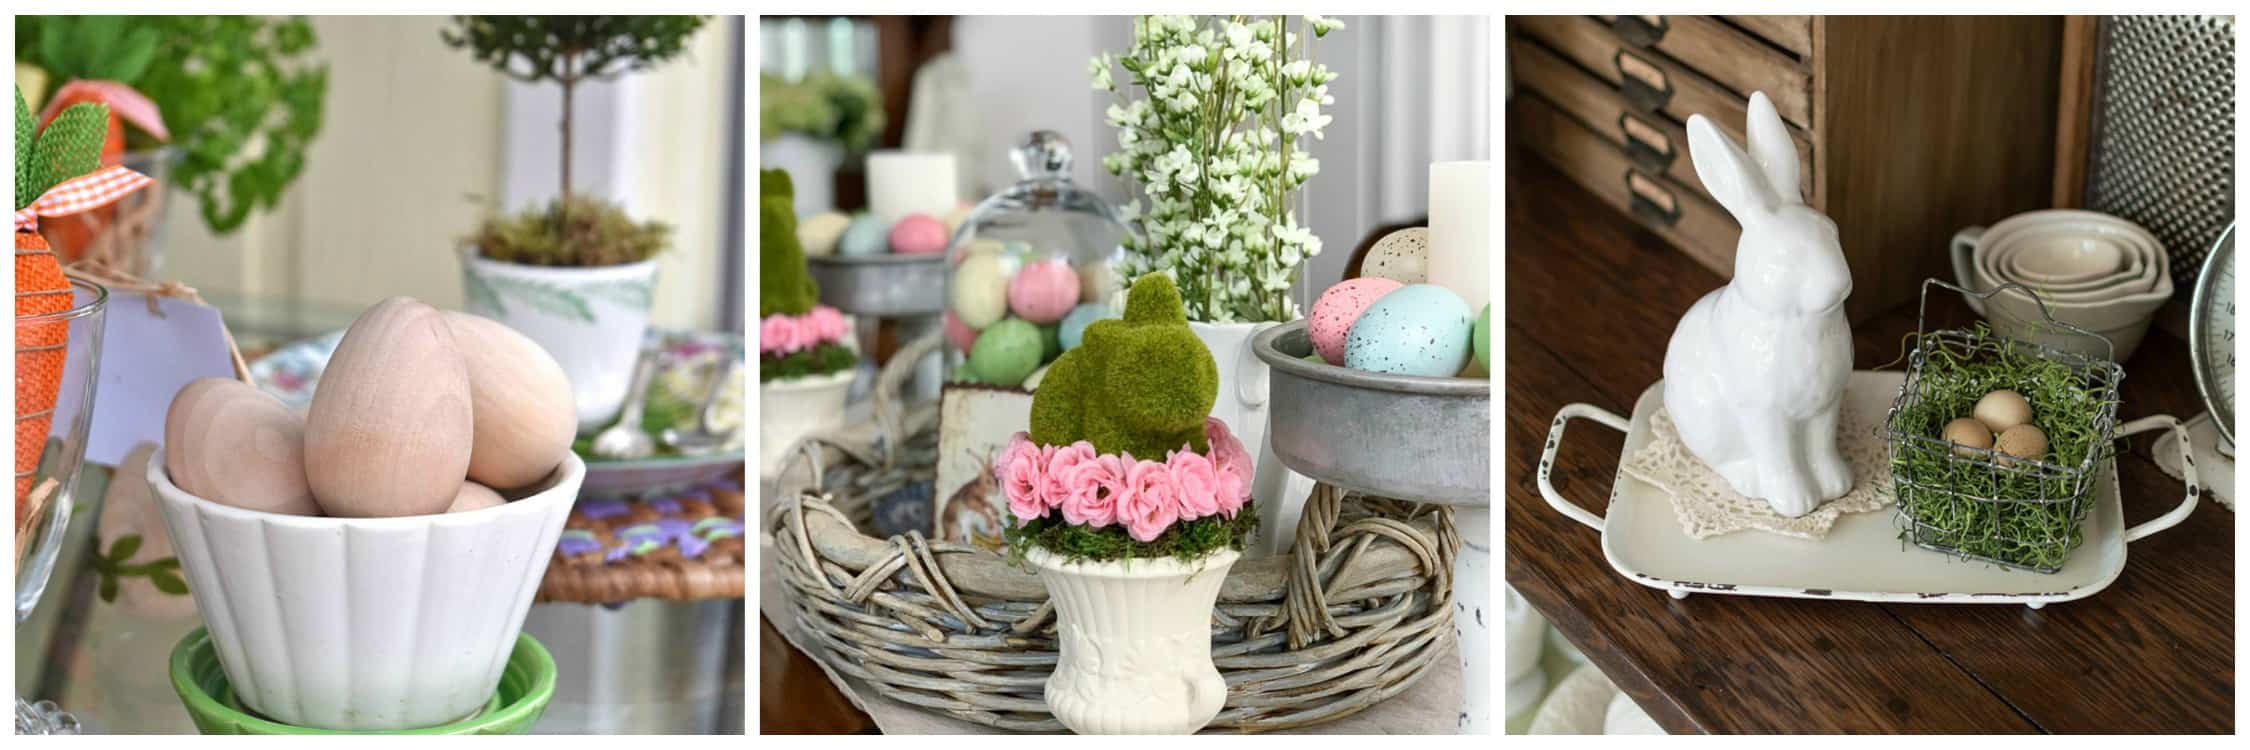 collage of spring decor images